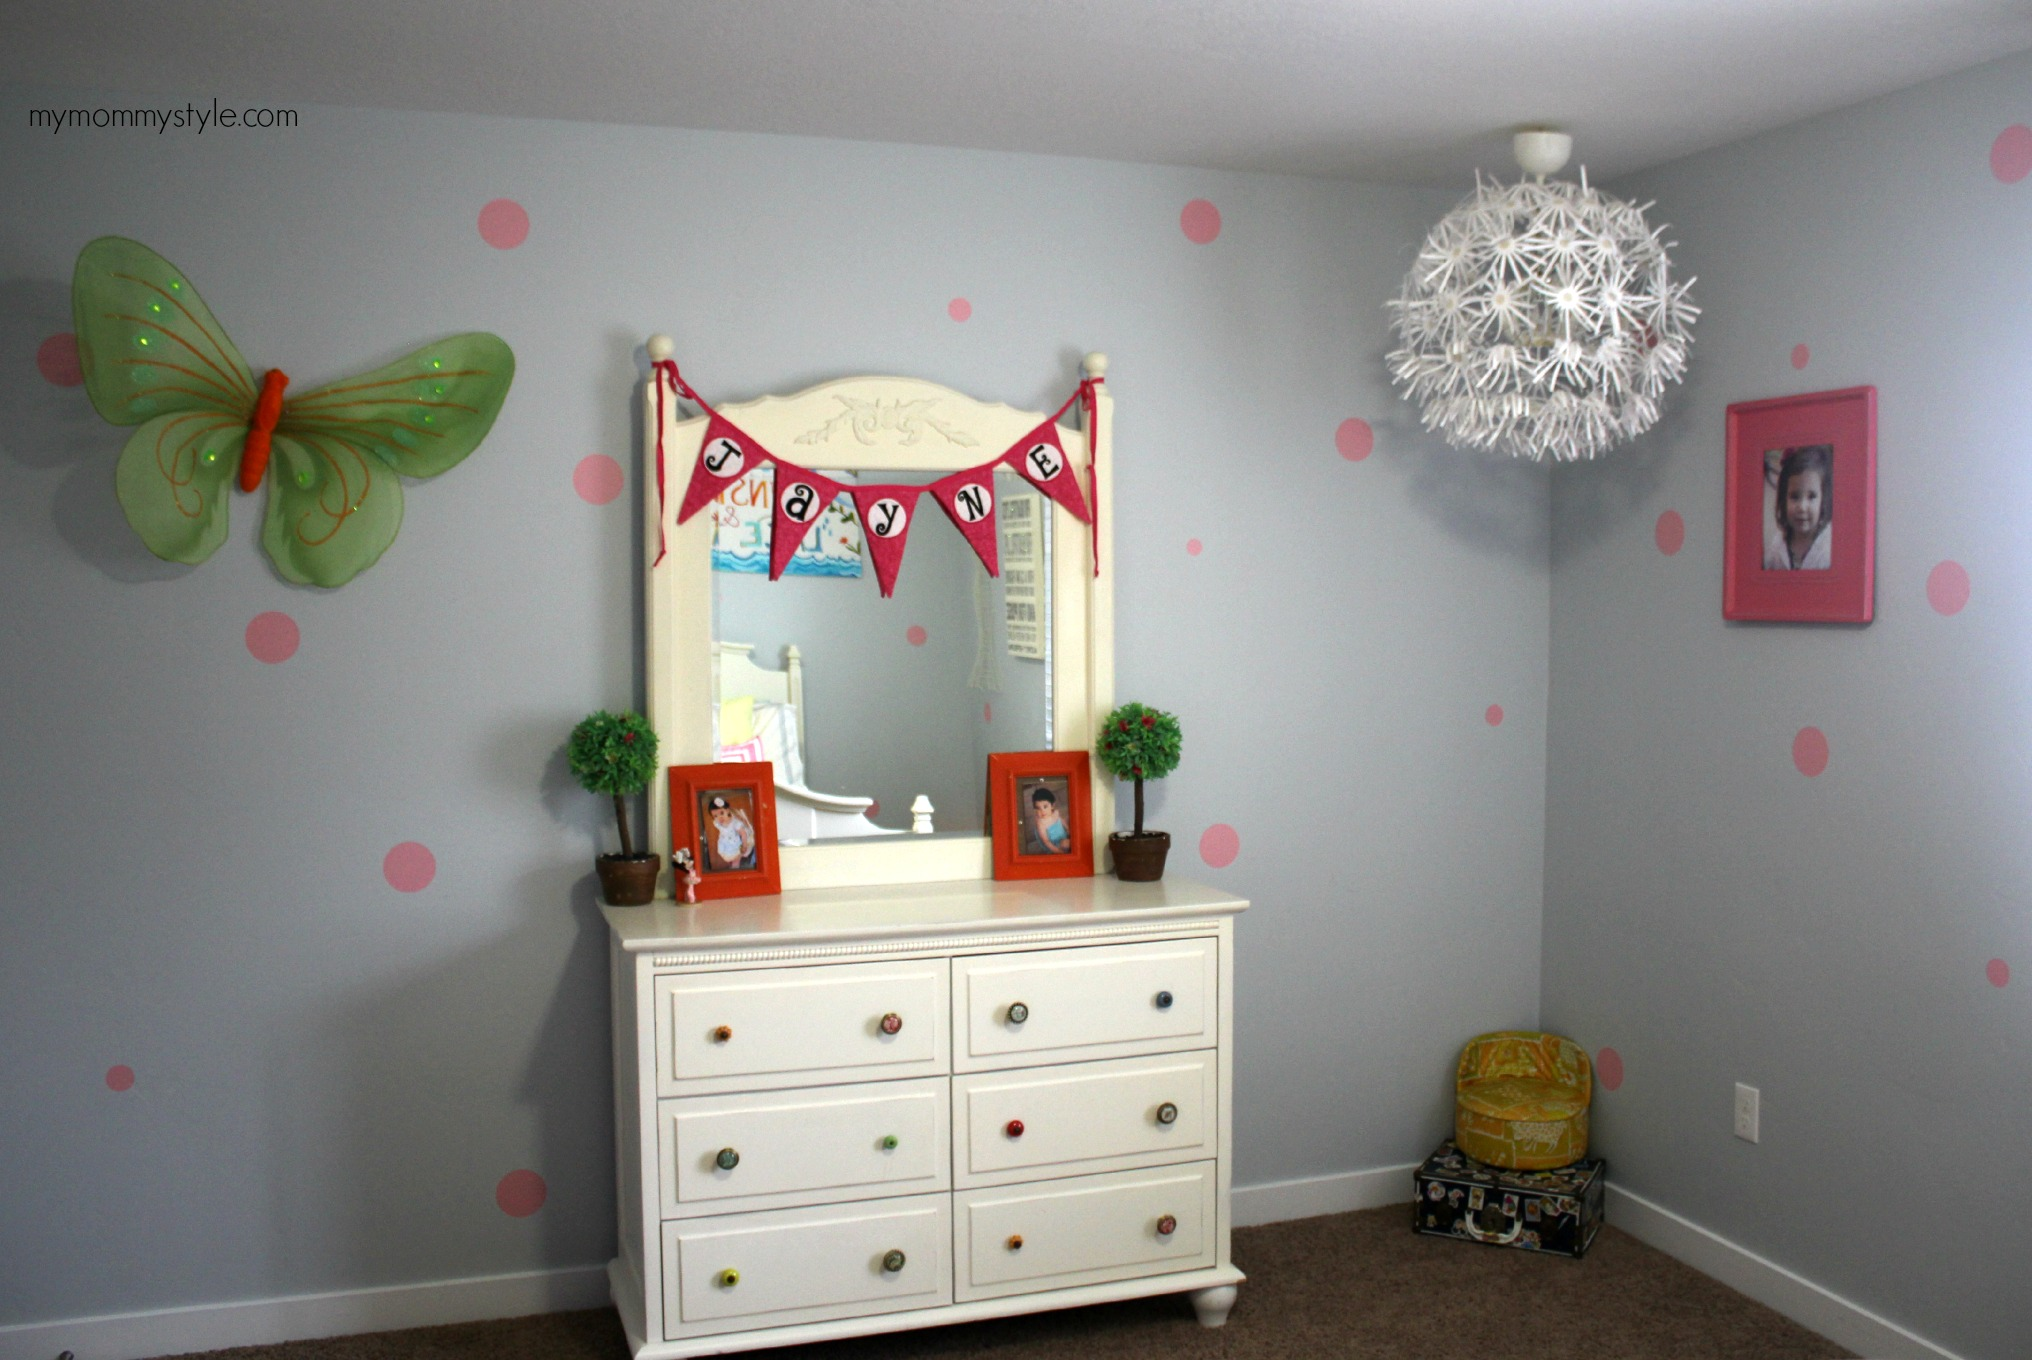 Little Girls room, polka dot walls, mymommystyle.com